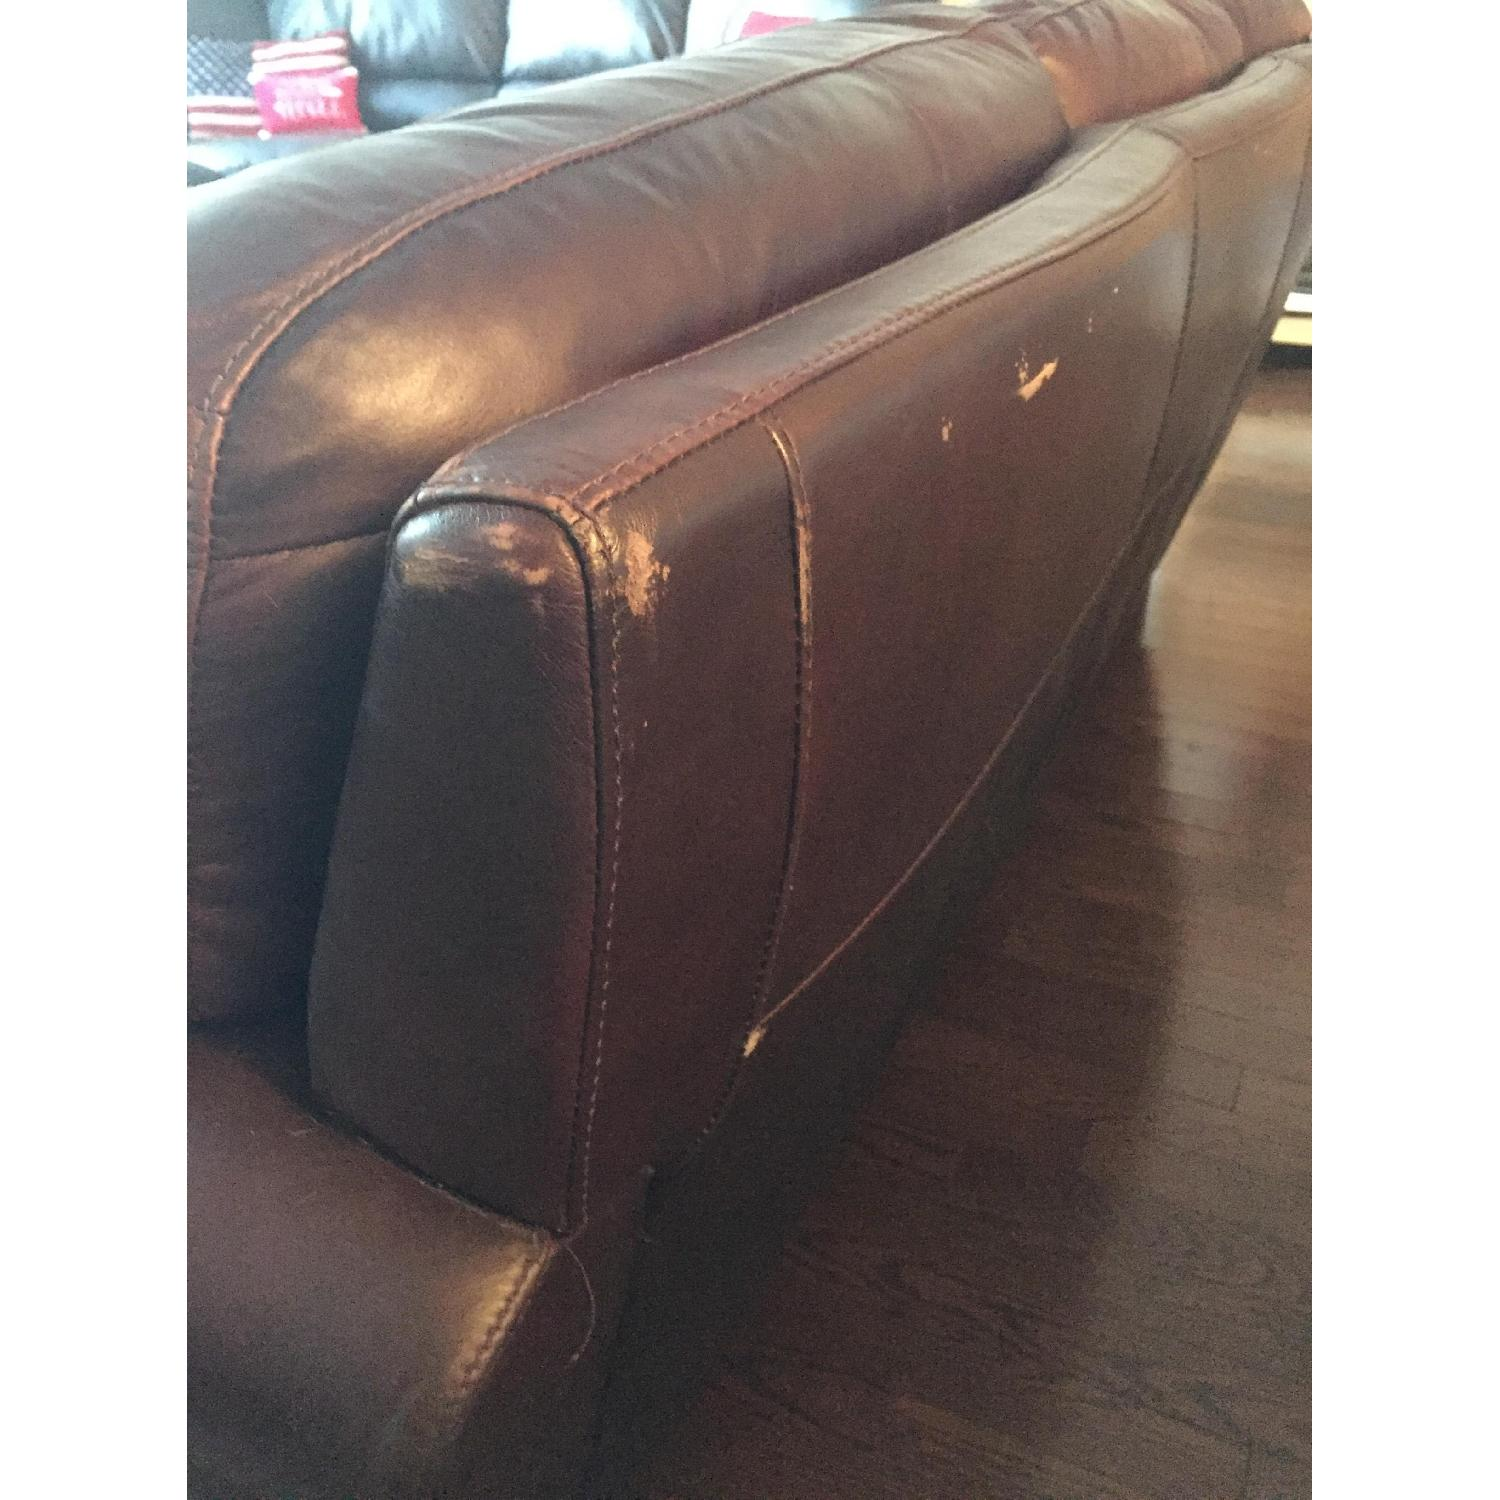 Raymour & Flanigan Jackson Leather Couch - image-6